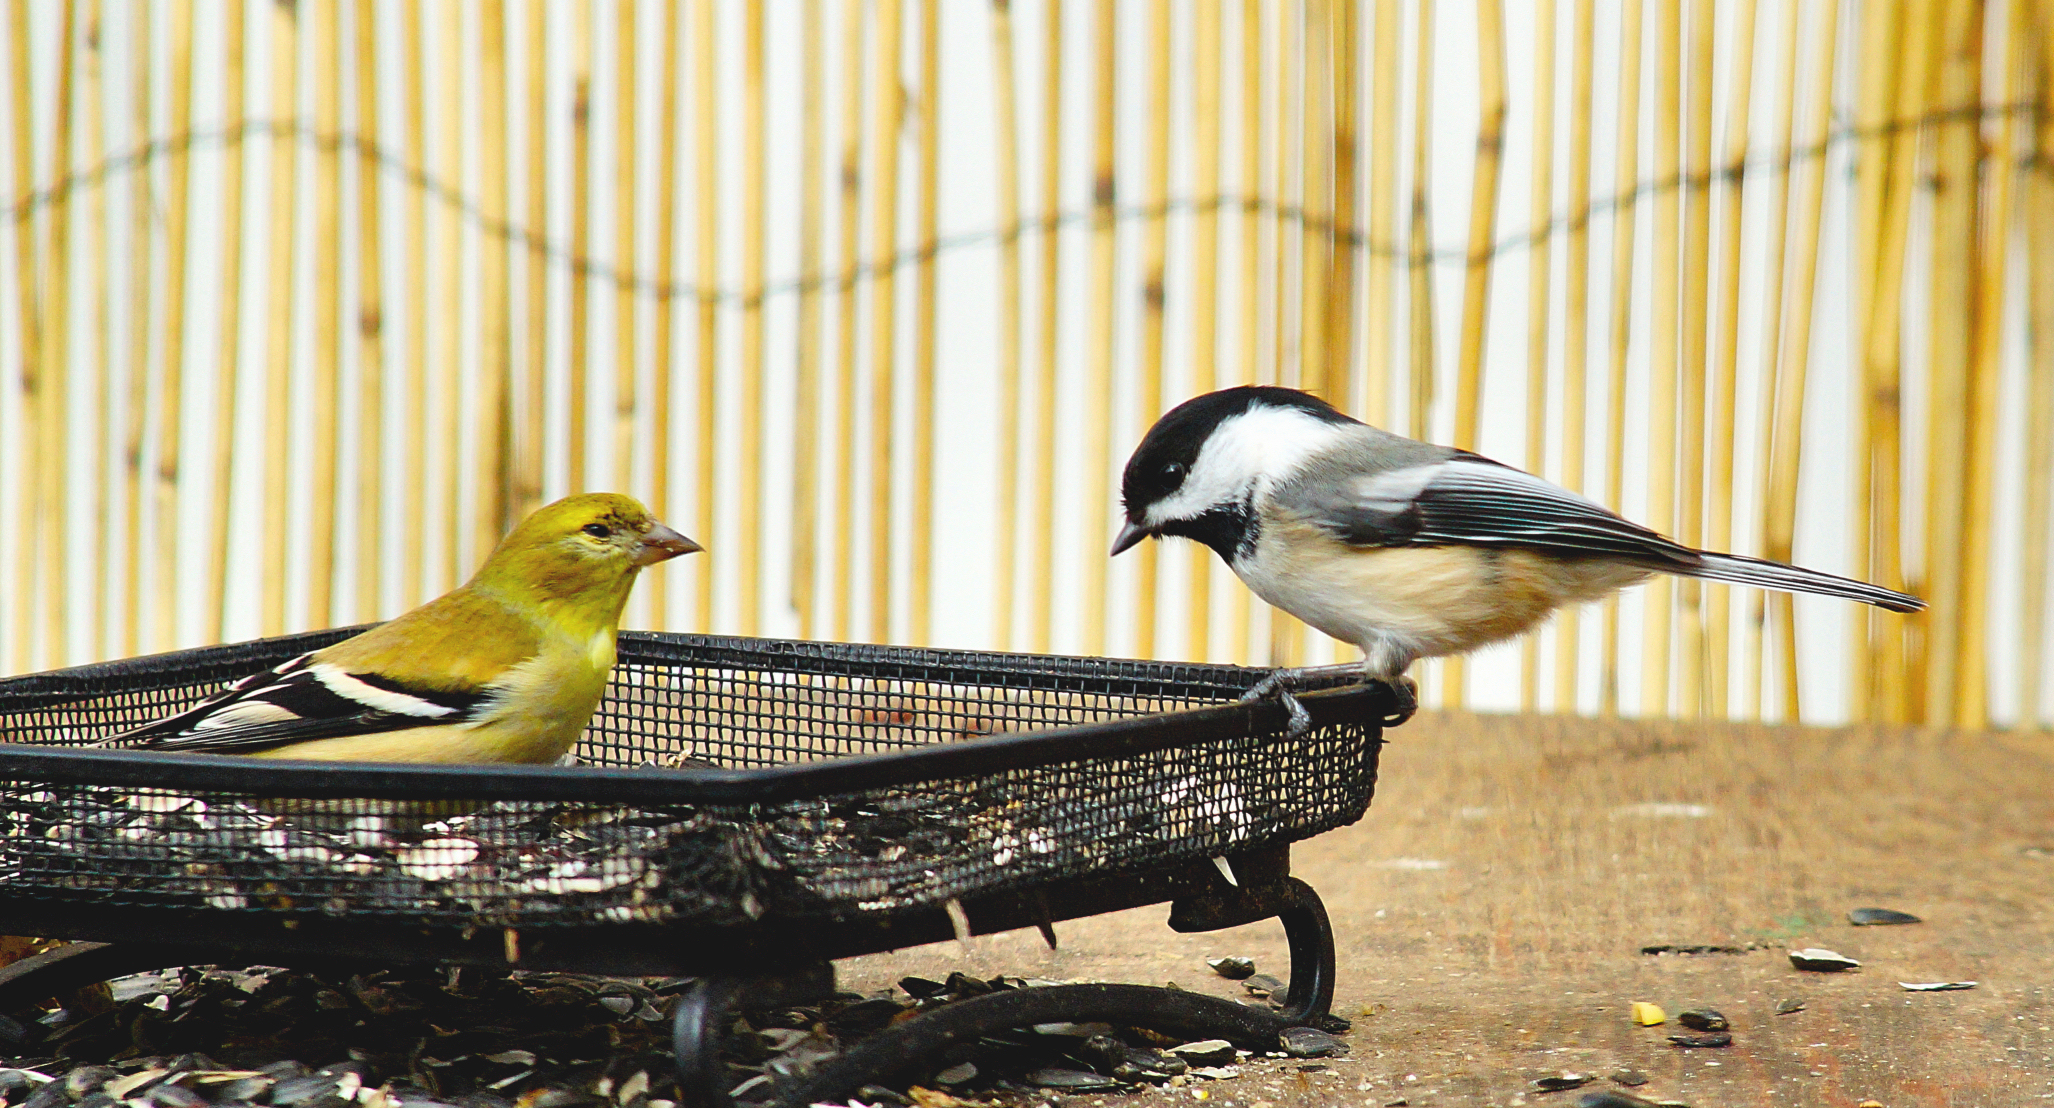 american goldfinch and black capped chickadee birdwatching